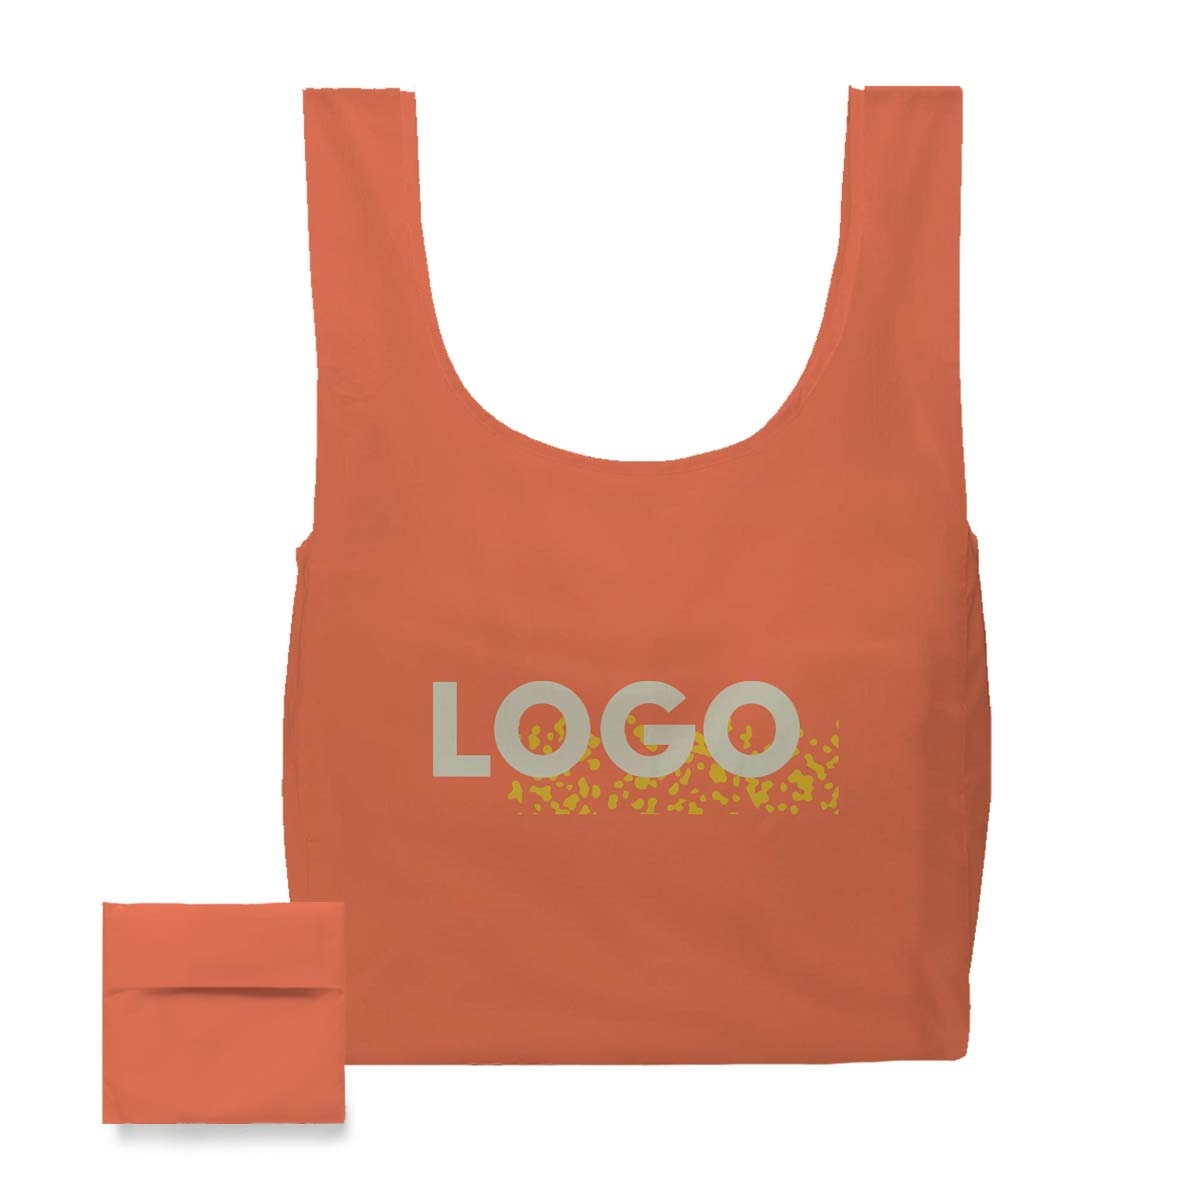 313869 cha cha small bag full color sublimated imprint